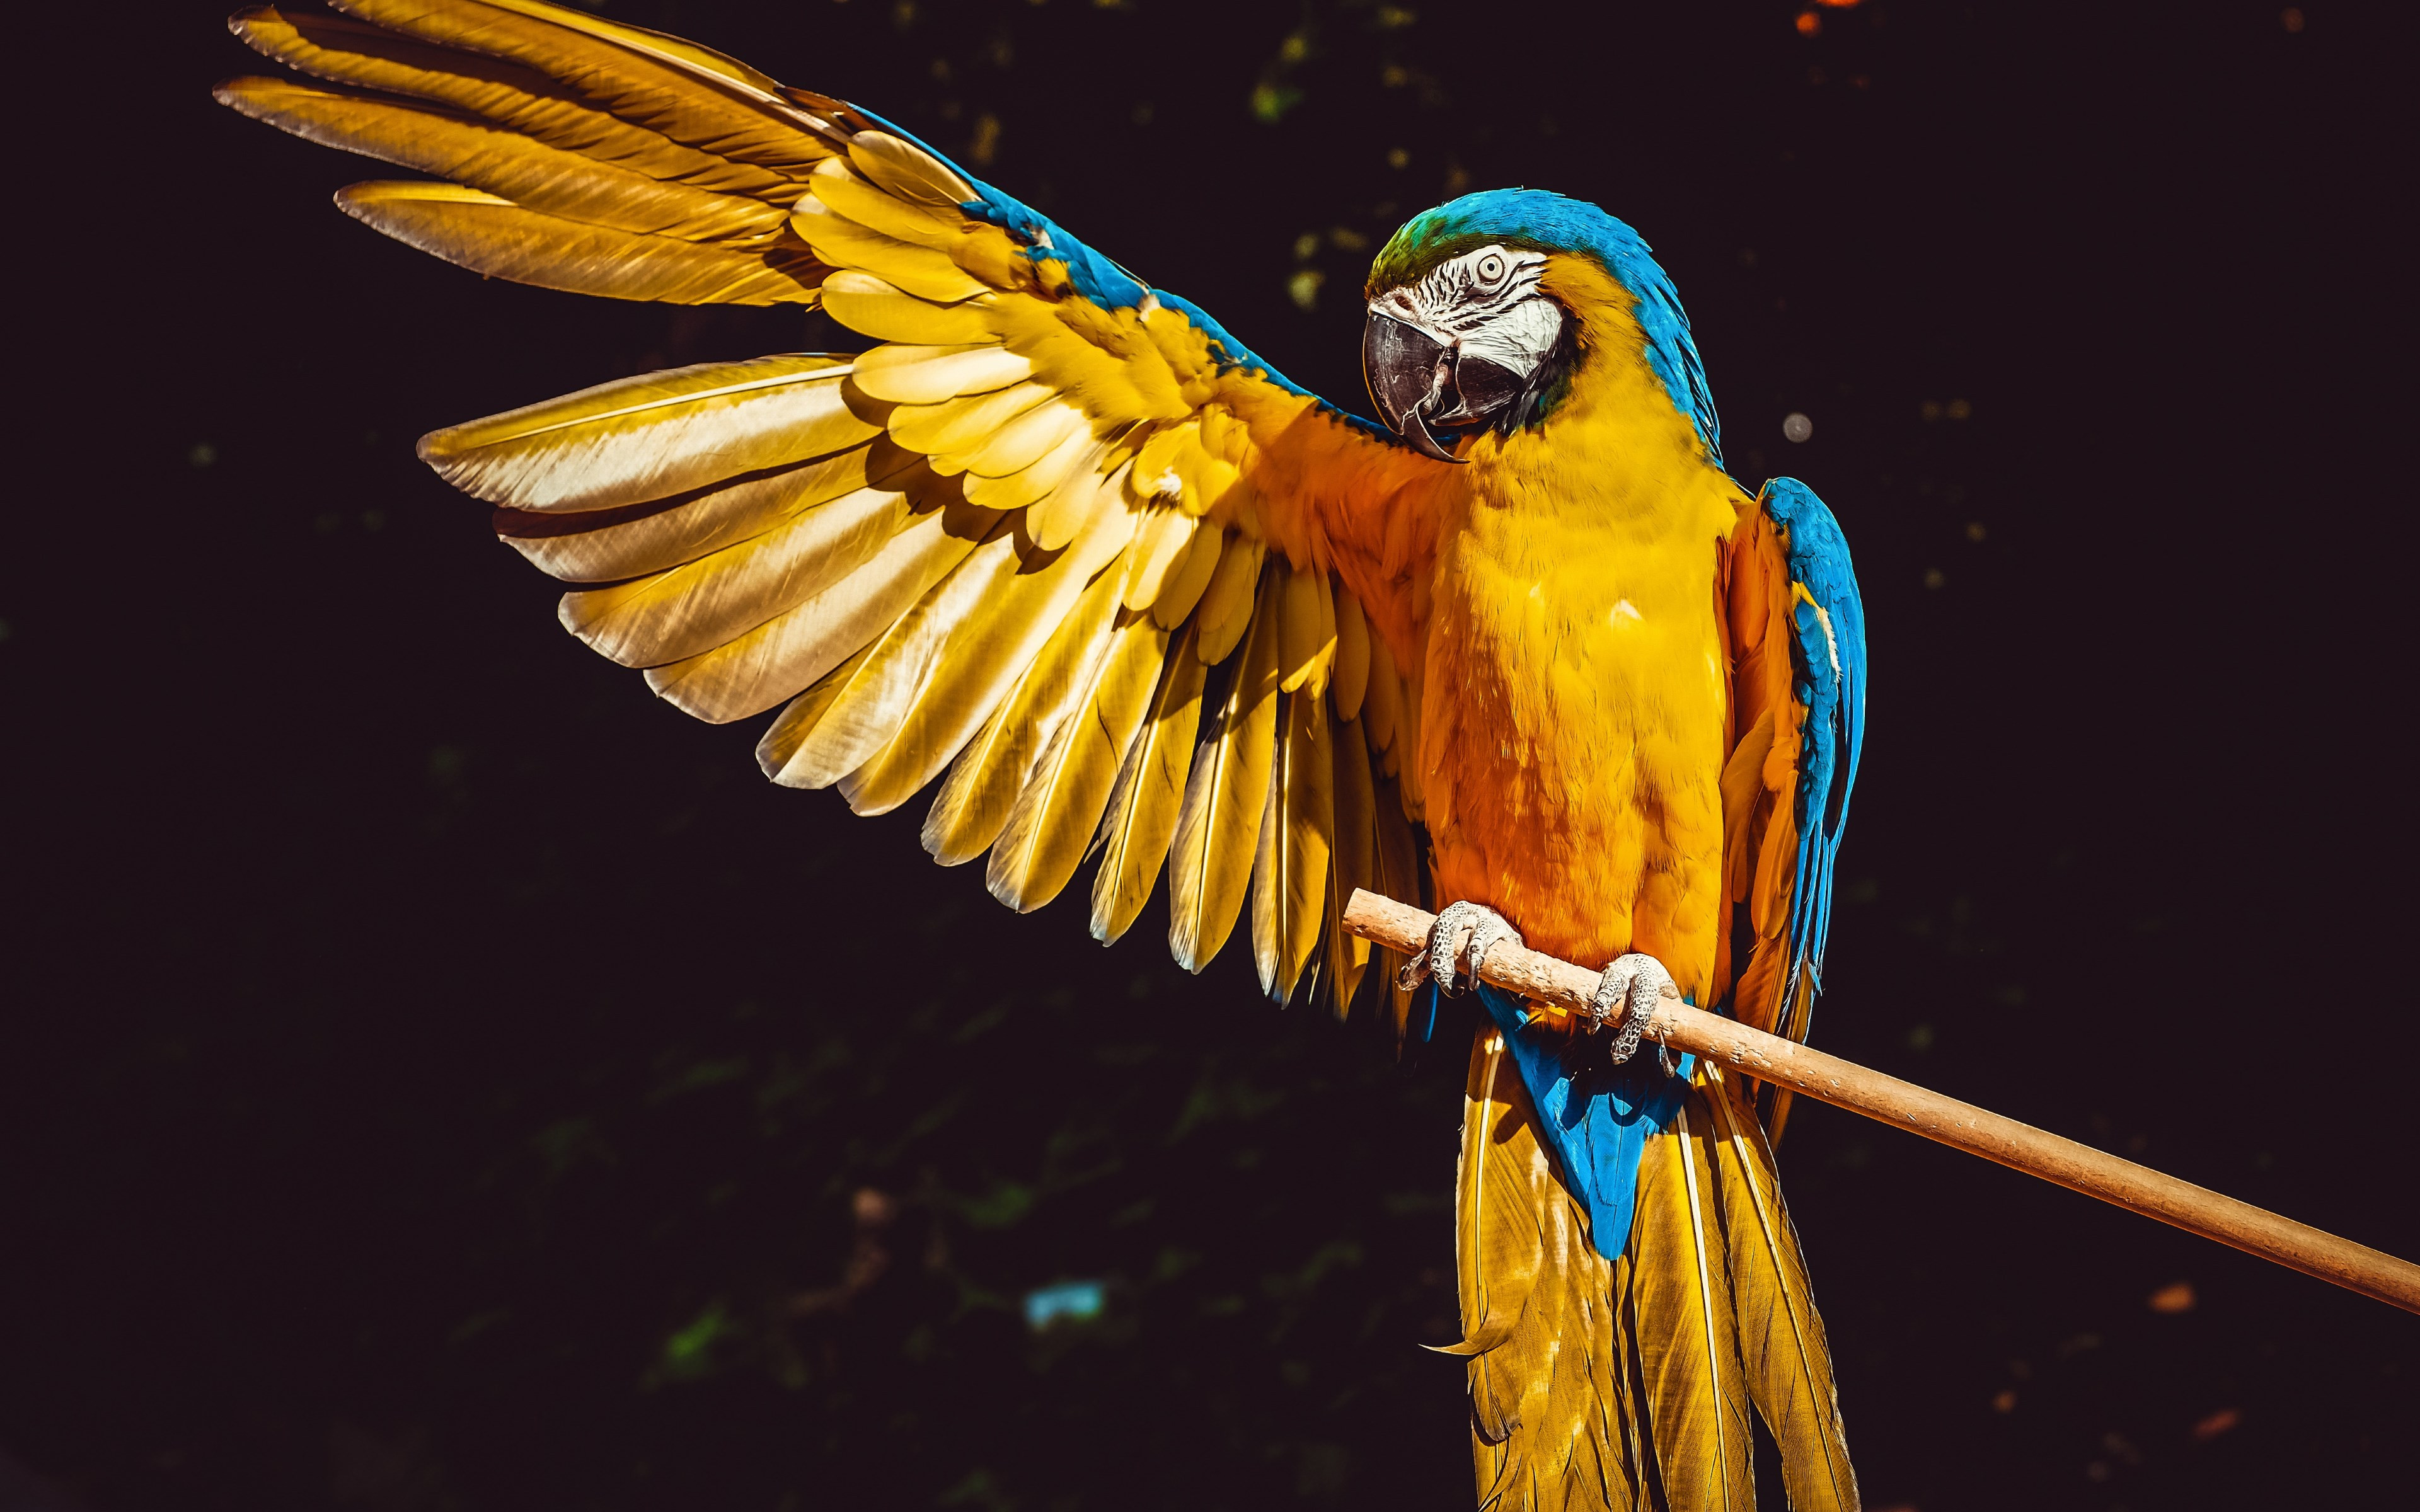 Blue and yellow macaw wallpaper 3840x2400